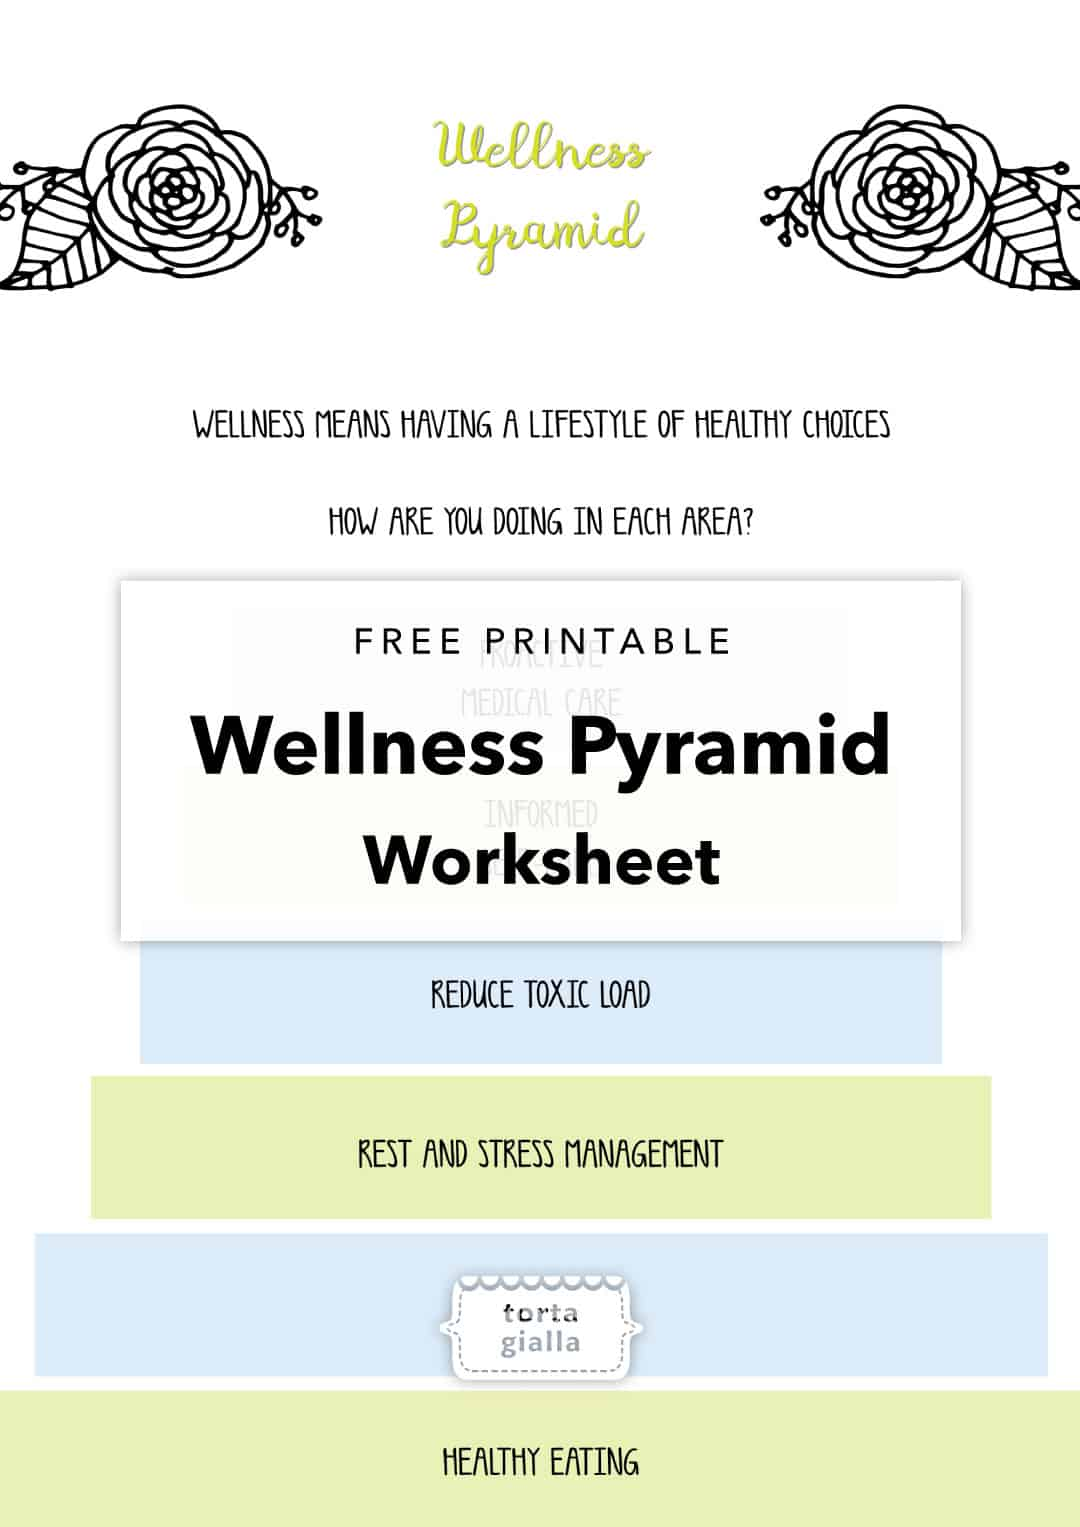 photo relating to Printable Pyramid referred to as Overall health Pyramid Worksheet Printable tortagialla